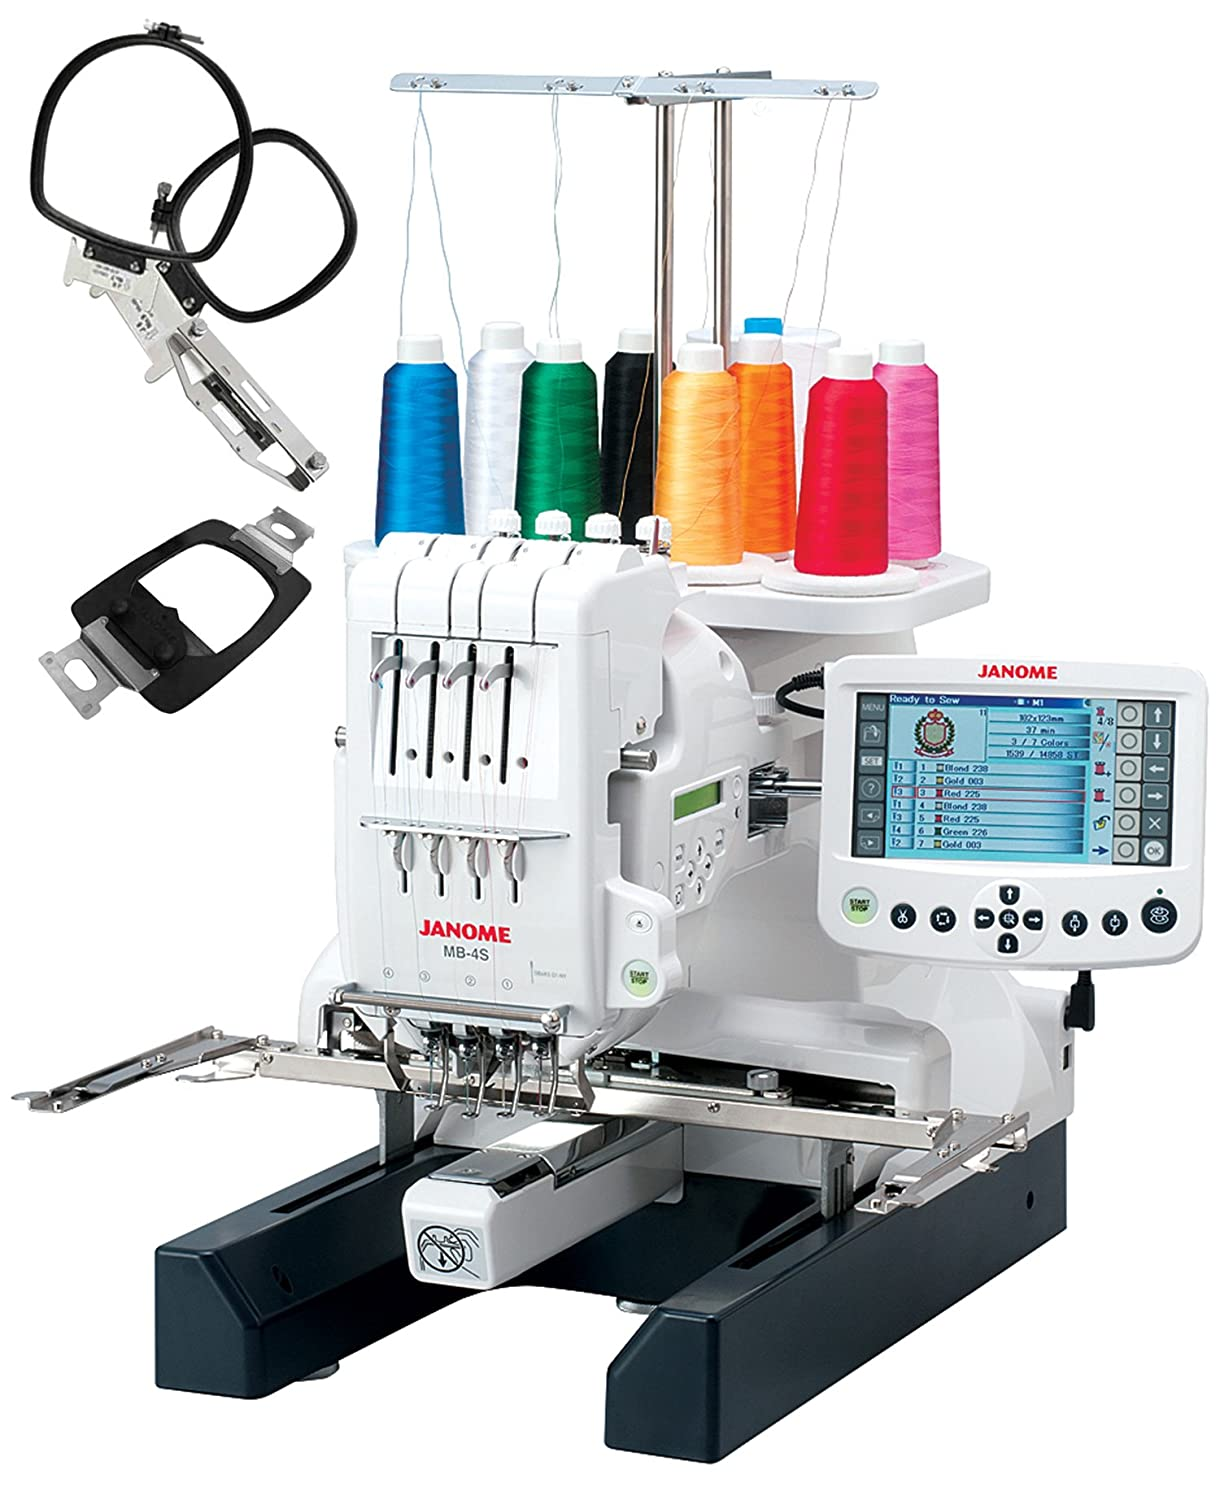 Janome MB4s Industrial Embroidery Machine